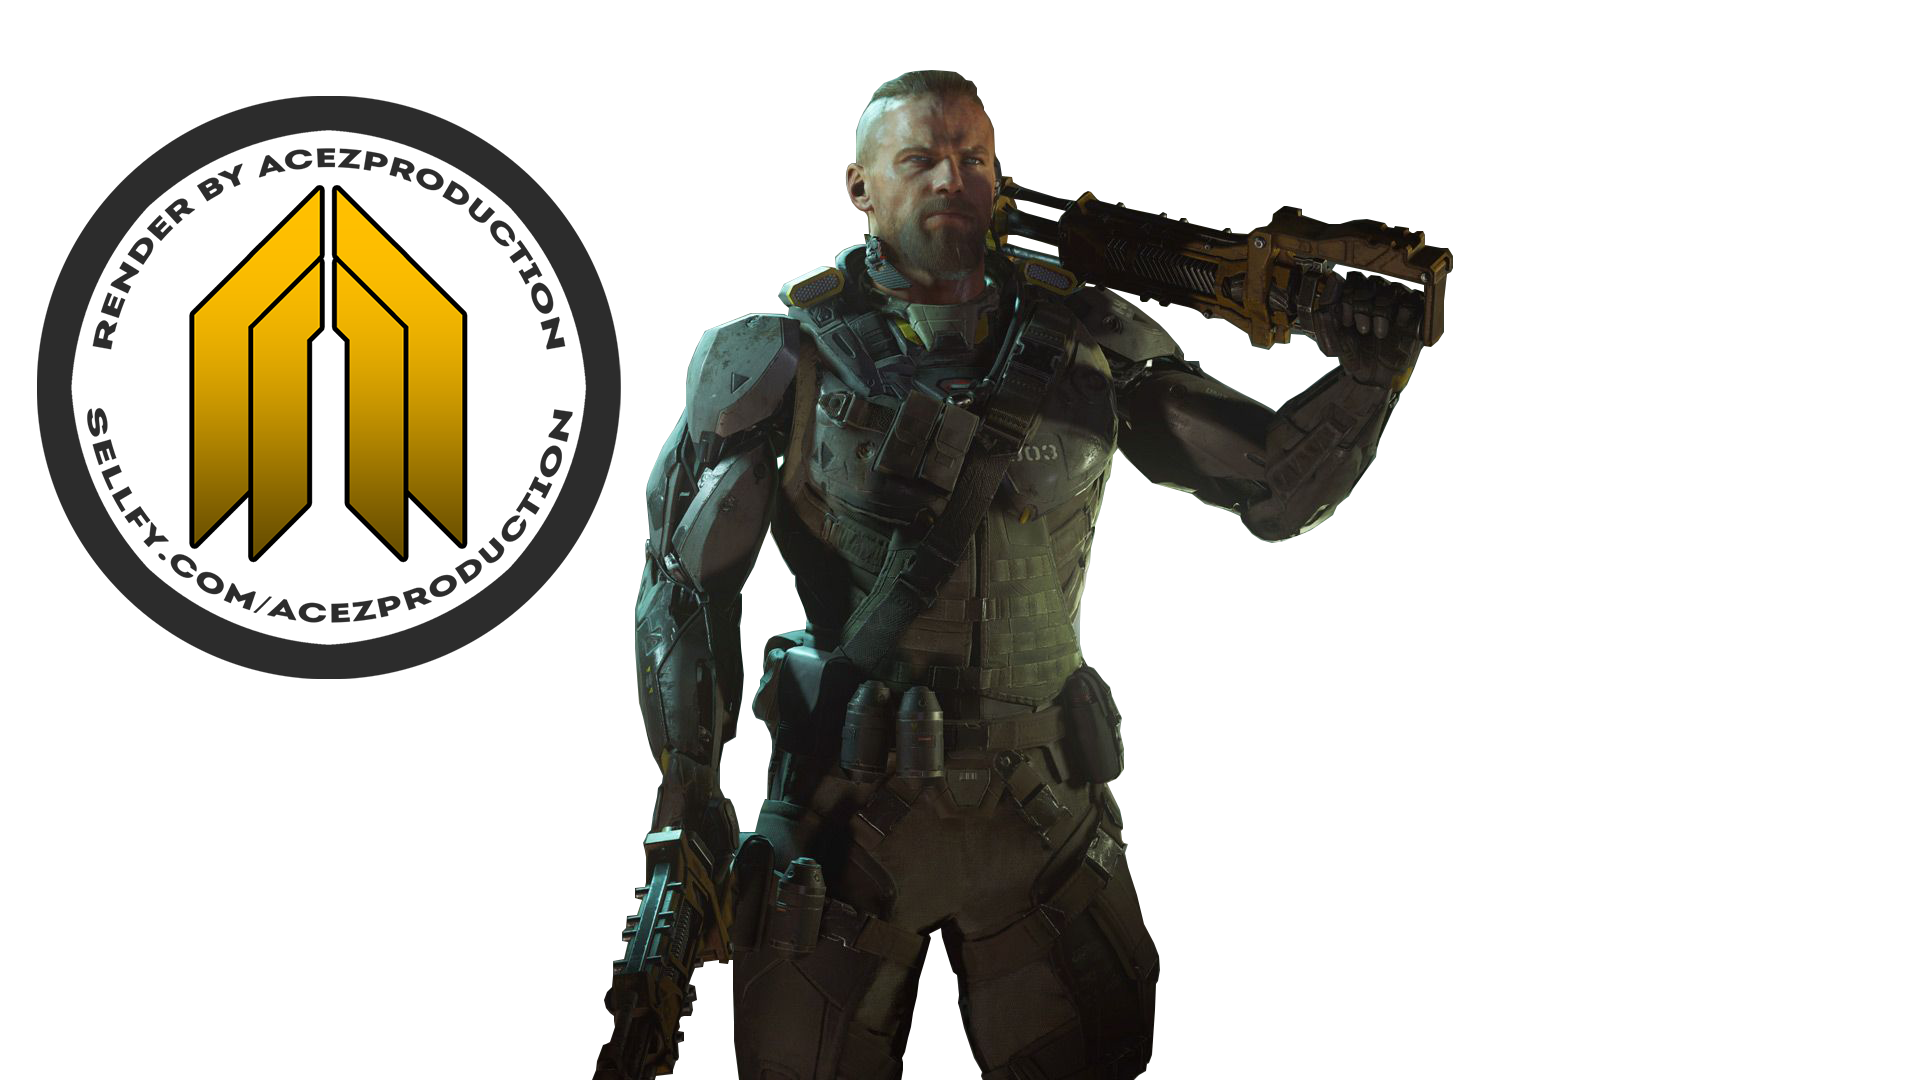 Call Of Duty High Quality PNG 9428